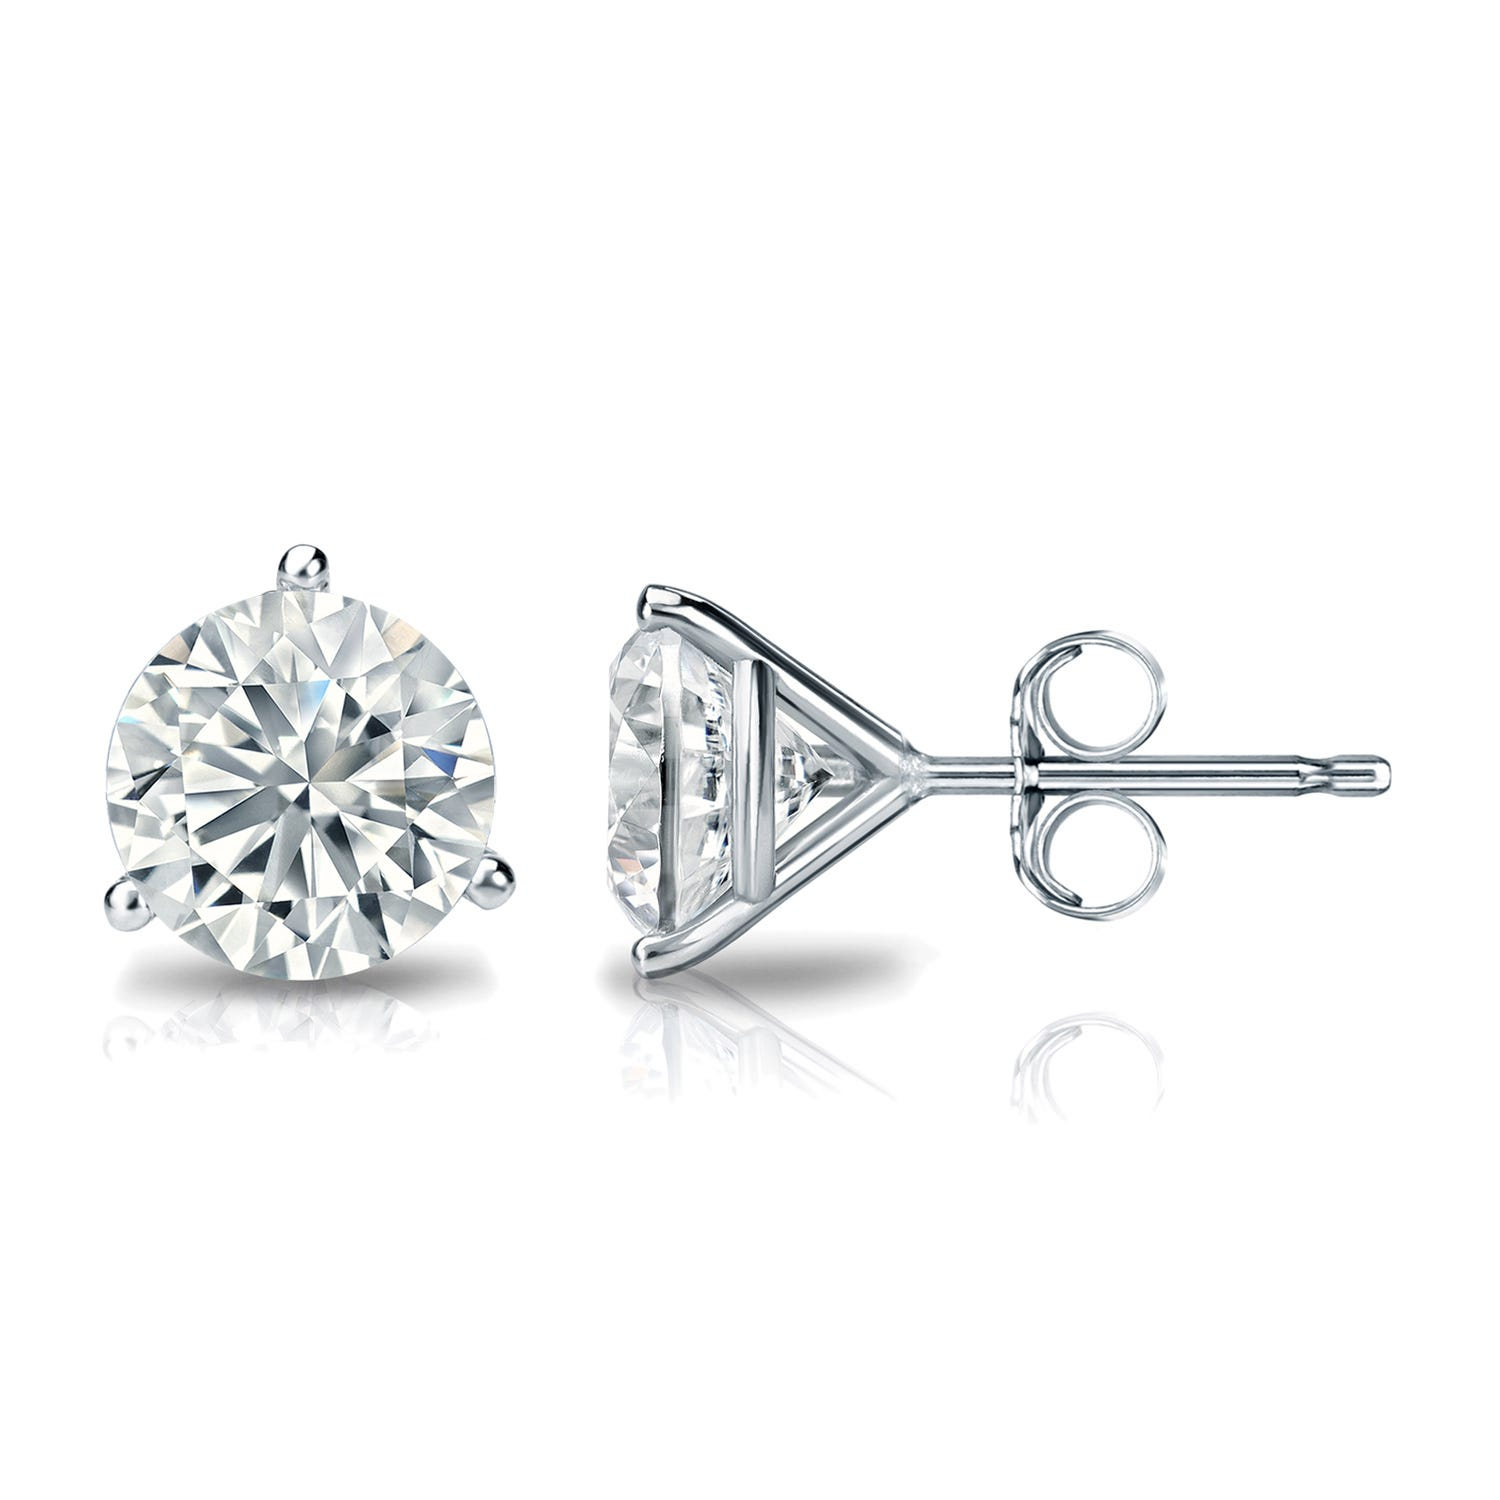 1-1/2 CTTW Round Diamond Solitaire Stud Earrings IJ SI1 in 14K White Gold IGI Certified 3-Prong Setting